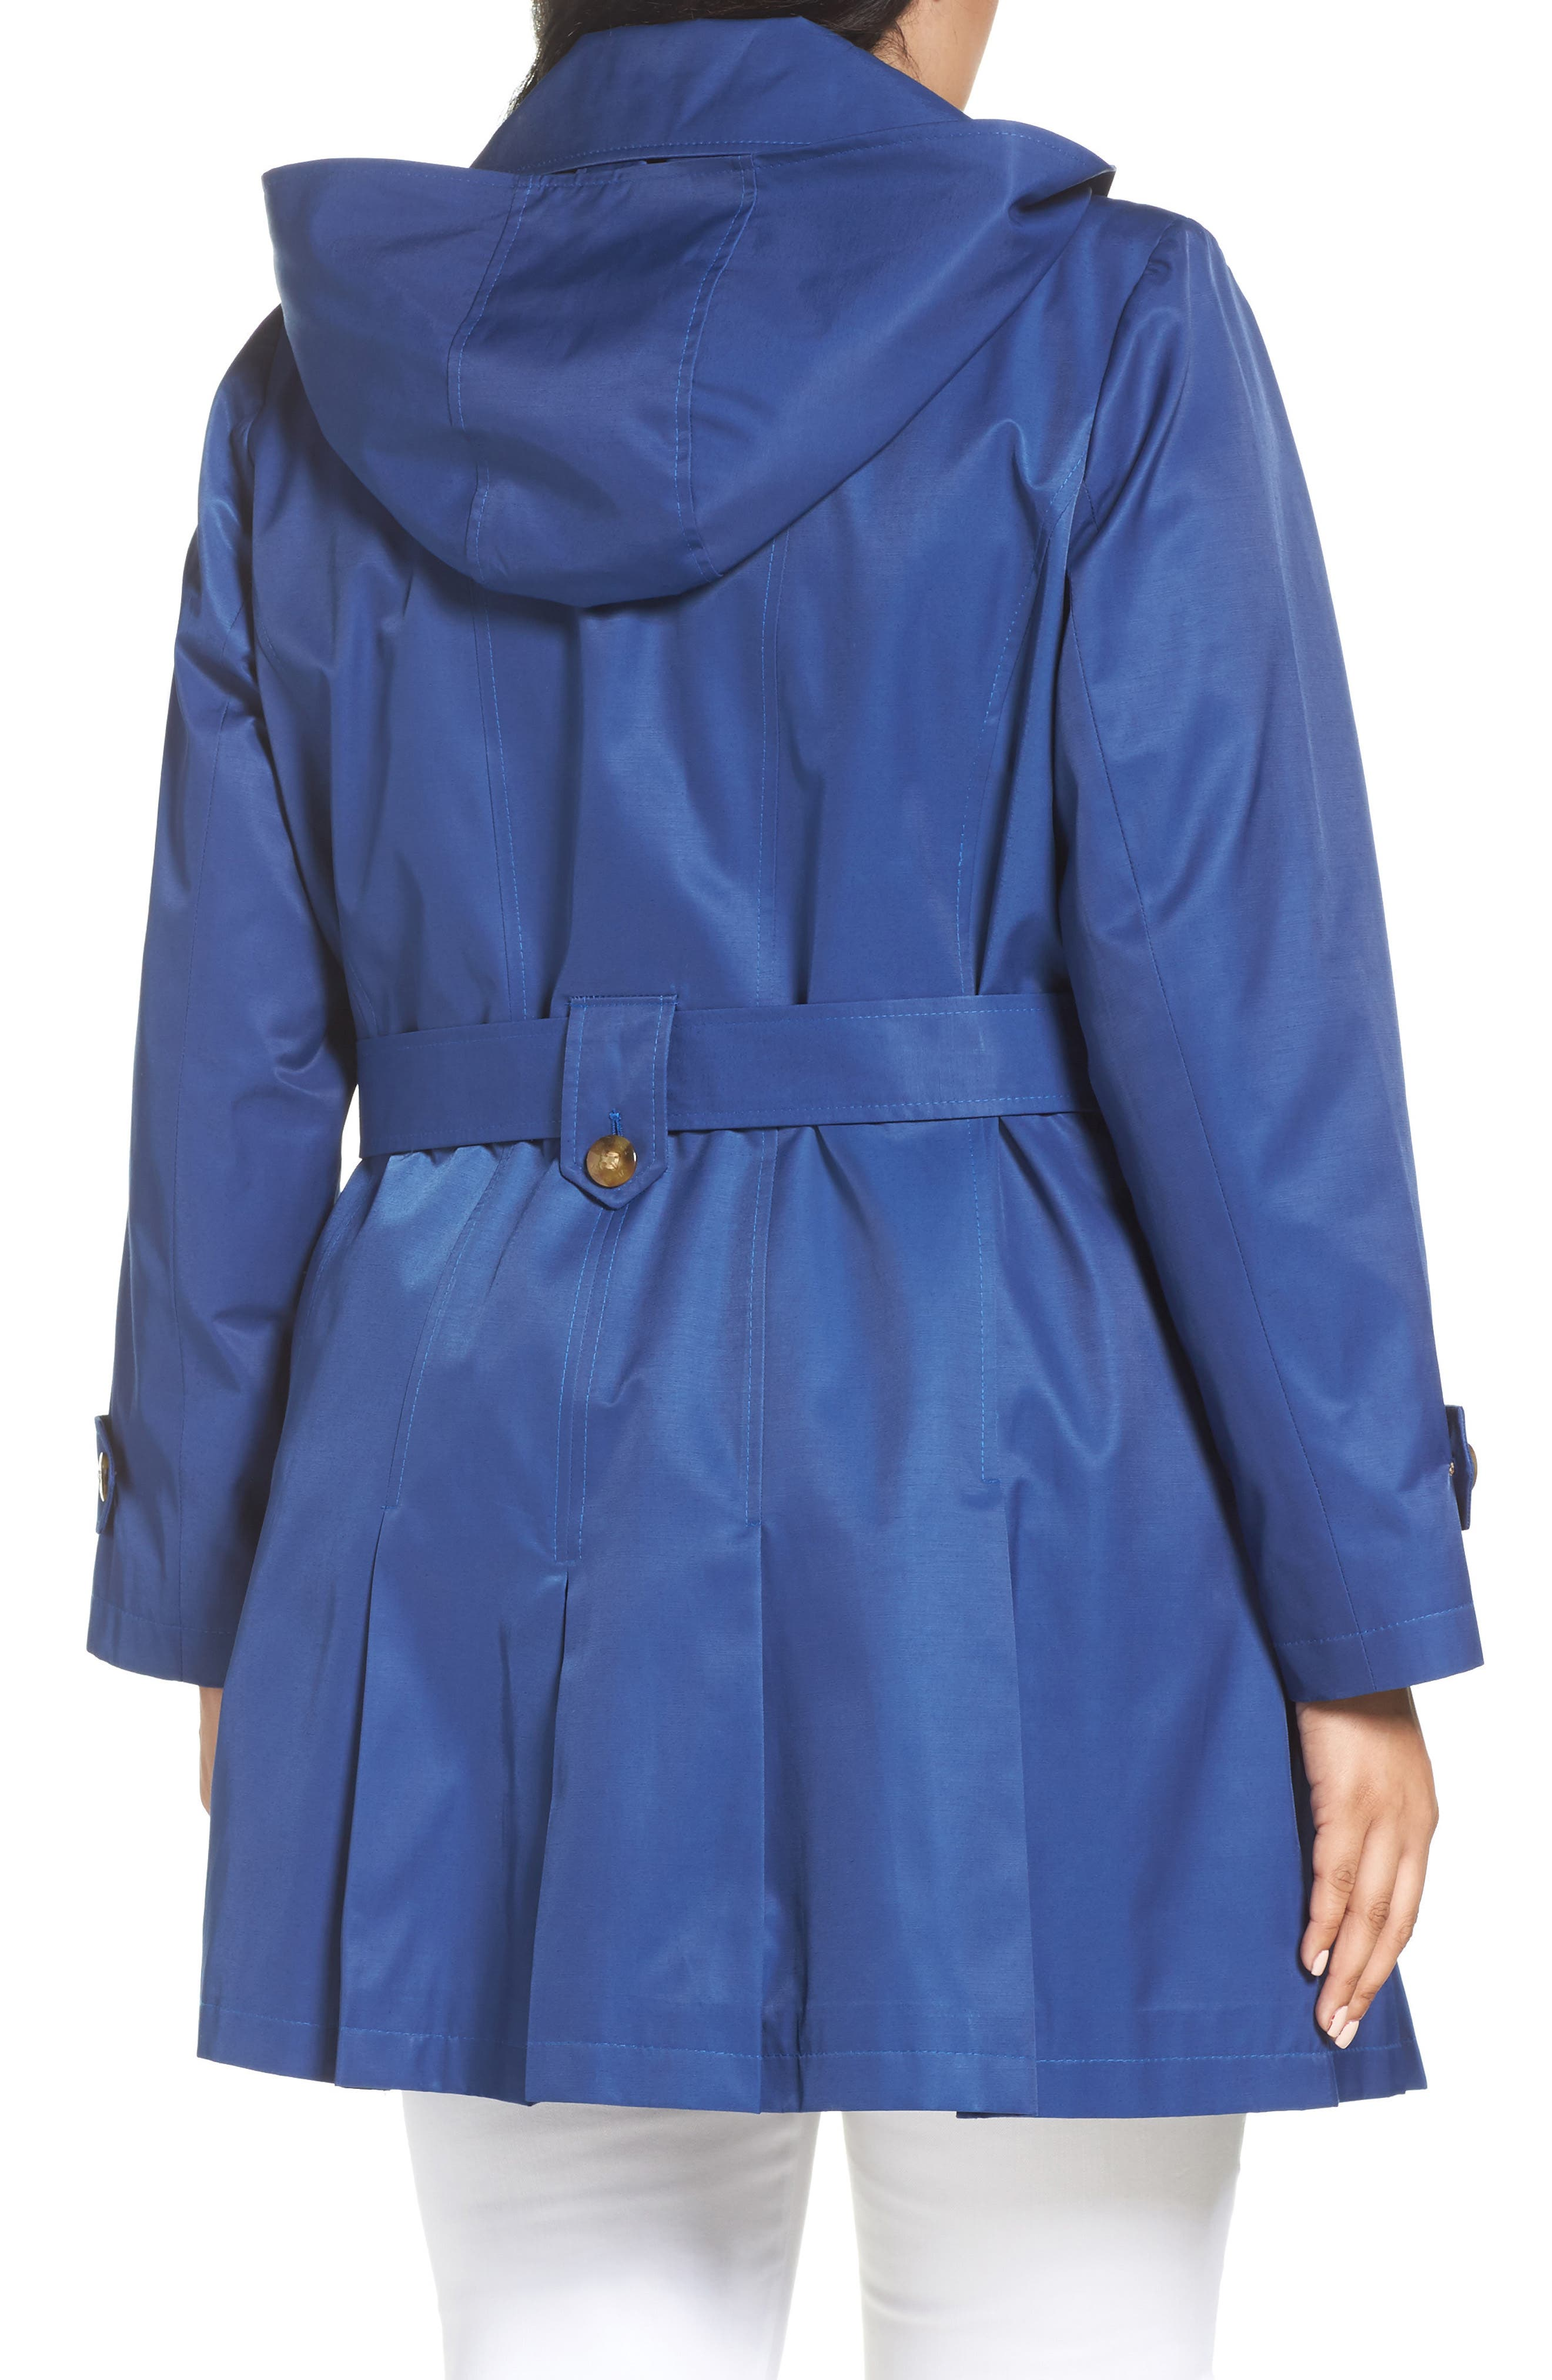 'Scarpa' Single Breasted Trench Coat,                             Alternate thumbnail 10, color,